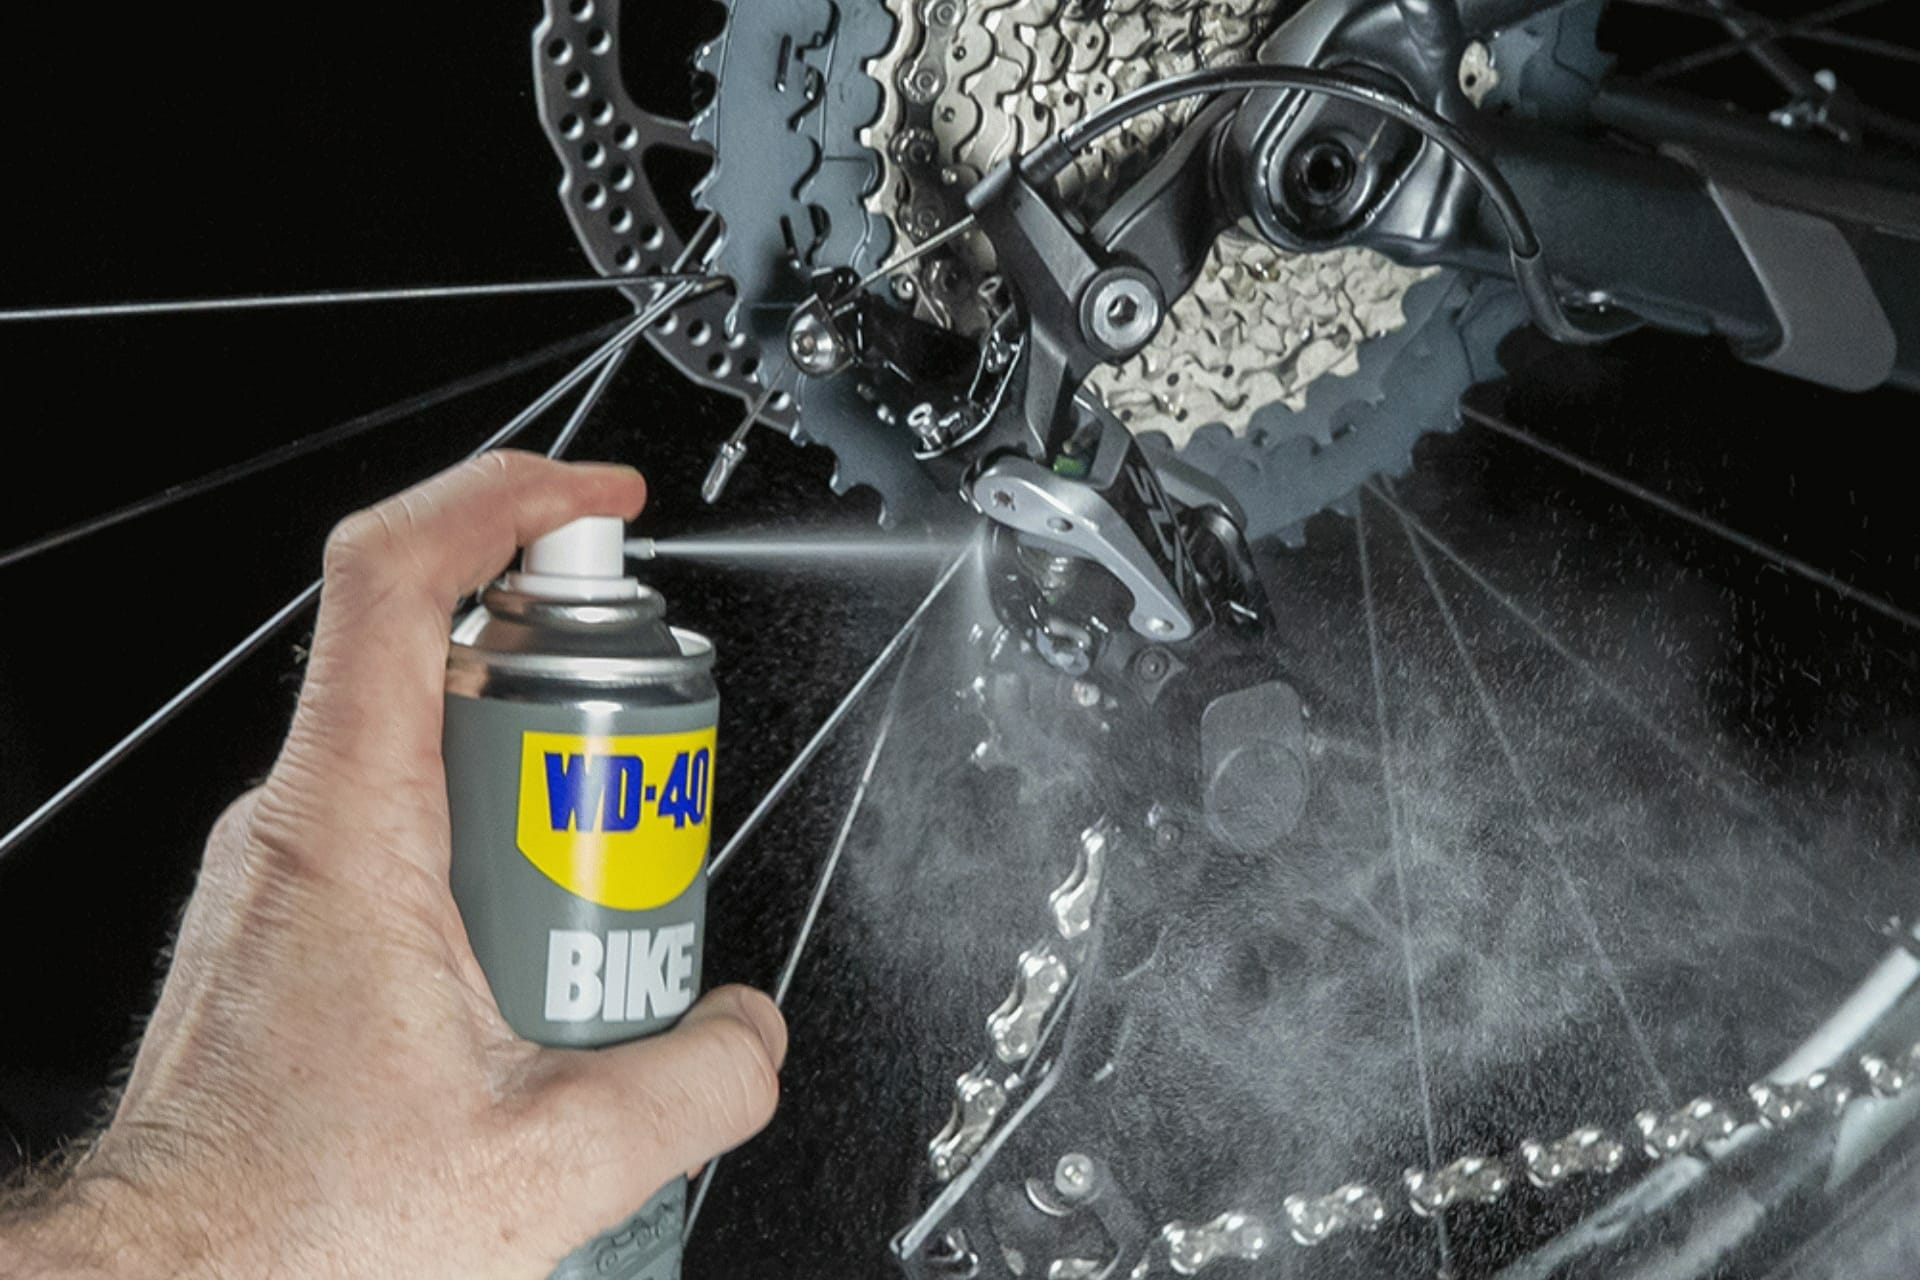 UK_WD40_BIKE_All_Conditions_Lube_250ml_Usage_2-1.jpg